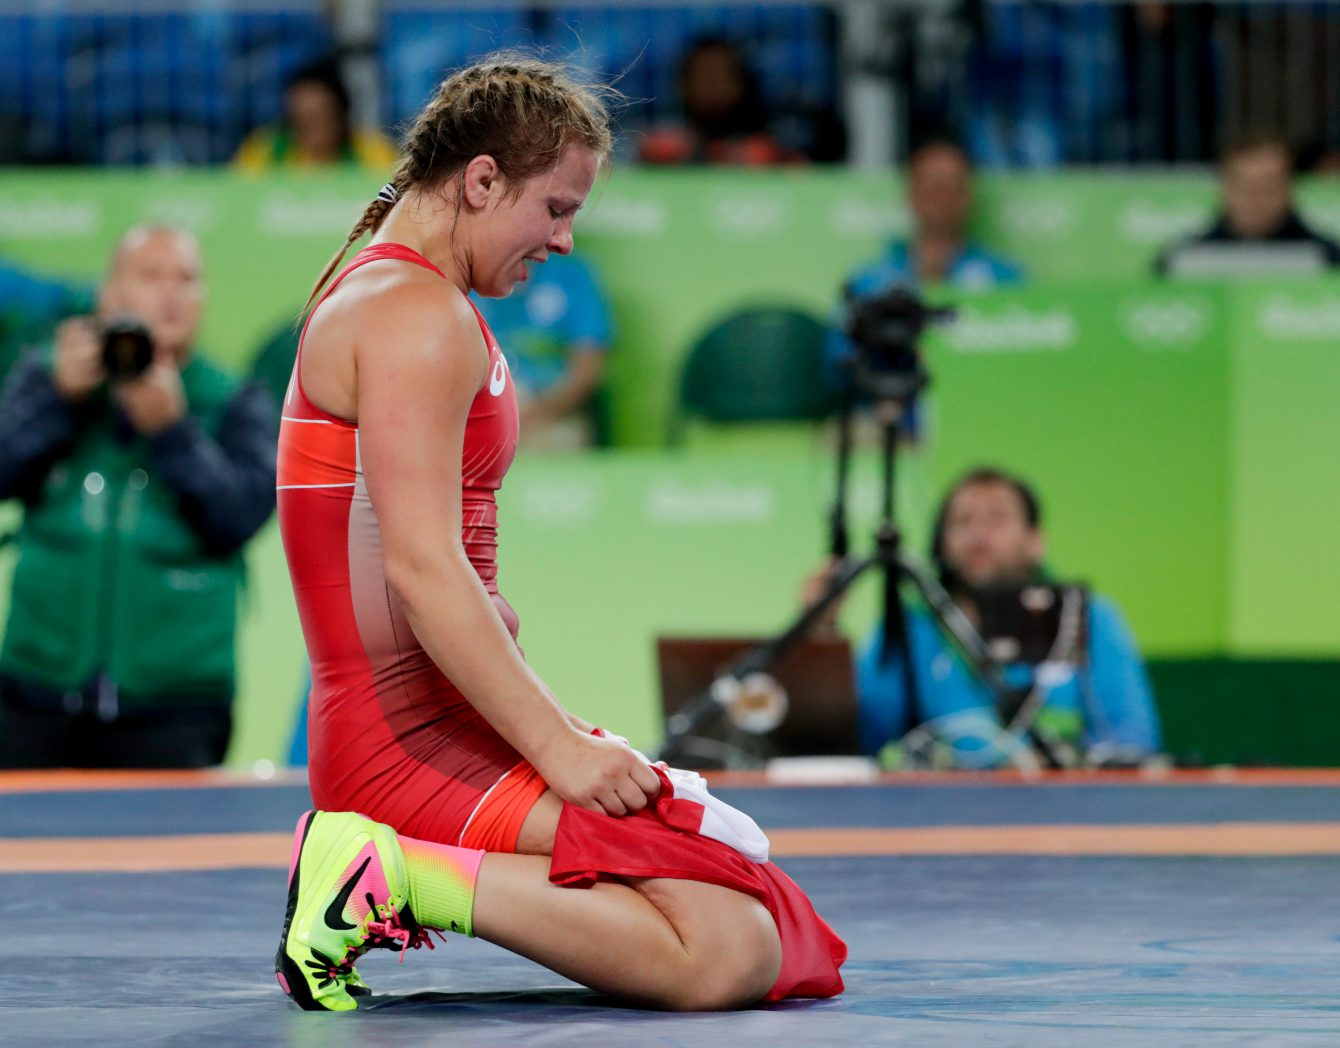 Canada's Erica Wiebe, after defeating Kazakhstan's Guzel Manyurova during the women's 75kg freestyle wrestling competition at the 2016 Summer Olympics in Rio de Janeiro, Brazil, Thursday, Aug. 18, 2016. (COC/ David Jackson)